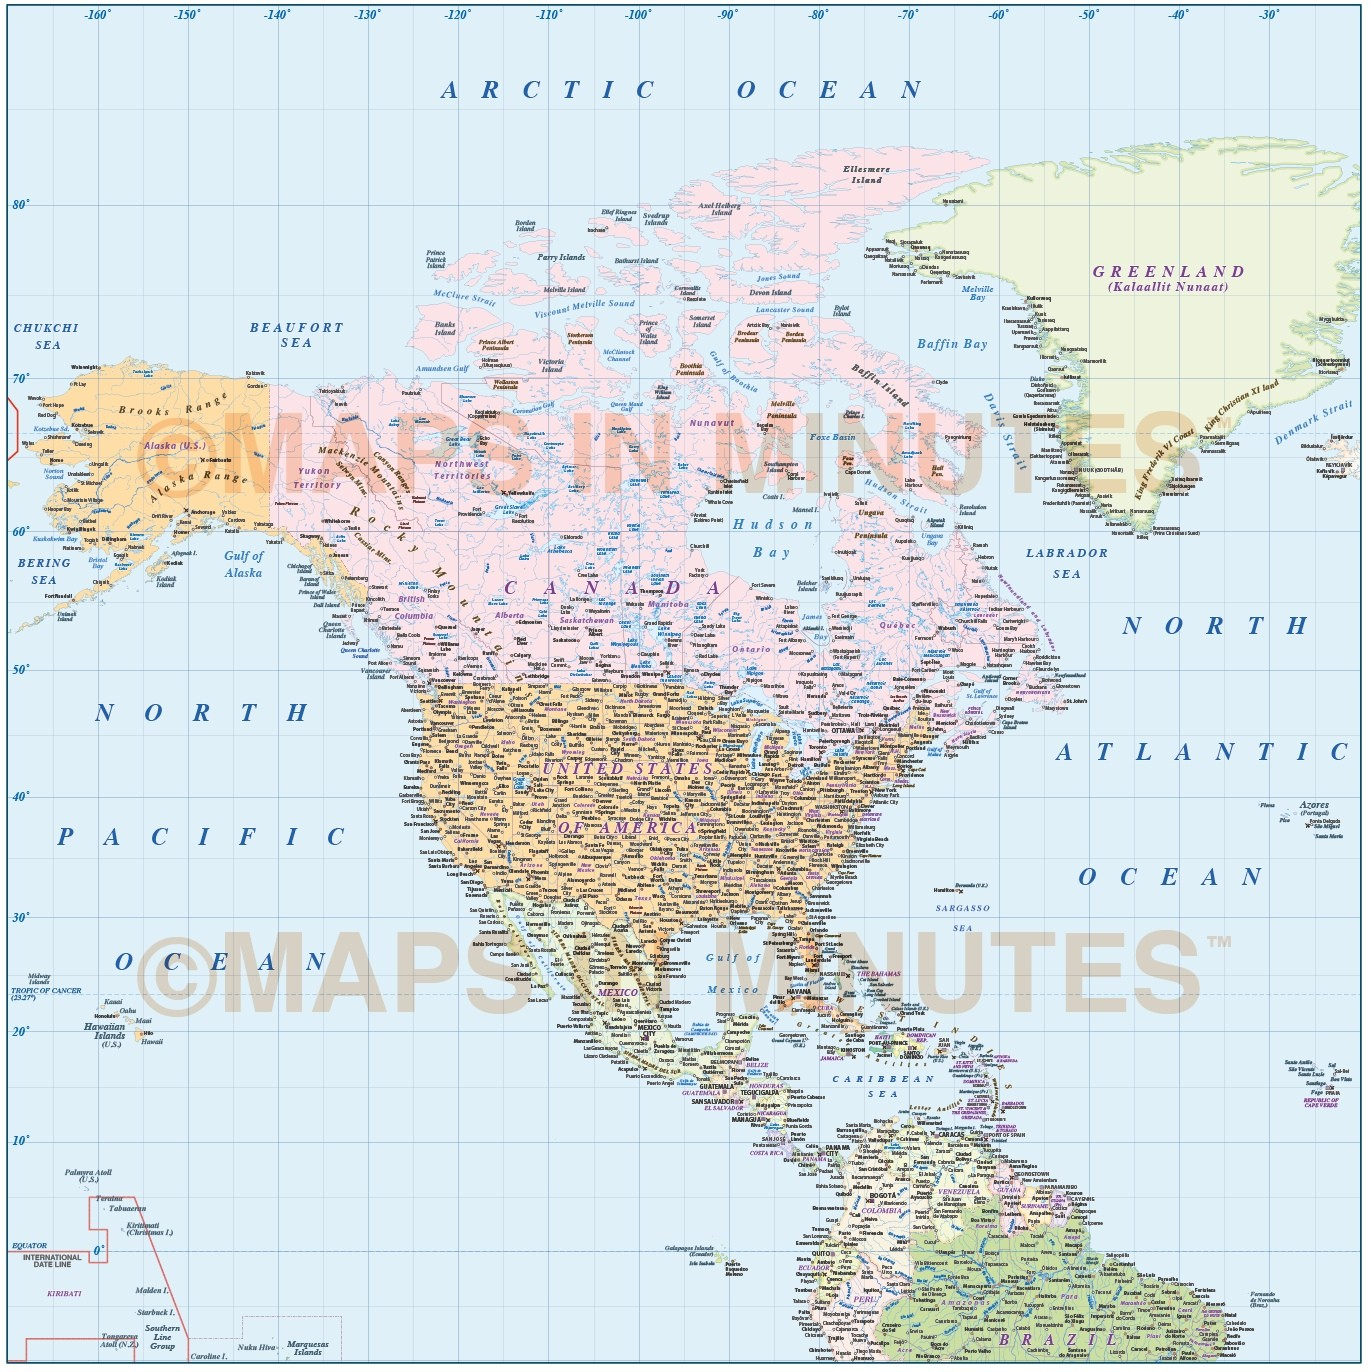 North America Countries Map With Ocean Floor Contours @10